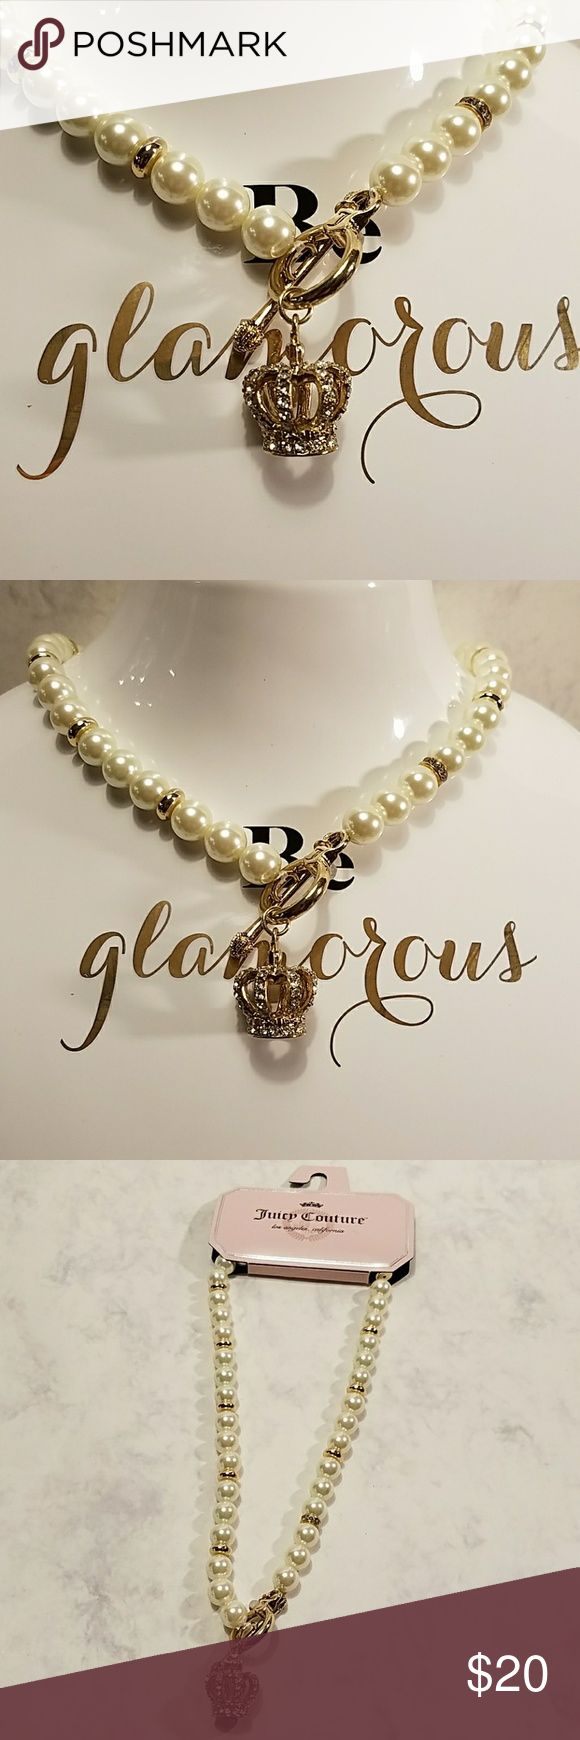 Juicy Couture Faux Pearl & Crown Toggle Necklace Gold Tone Crown simulated crystals Faux white pearl toggle necklace Juicy Couture Jewelry Necklaces